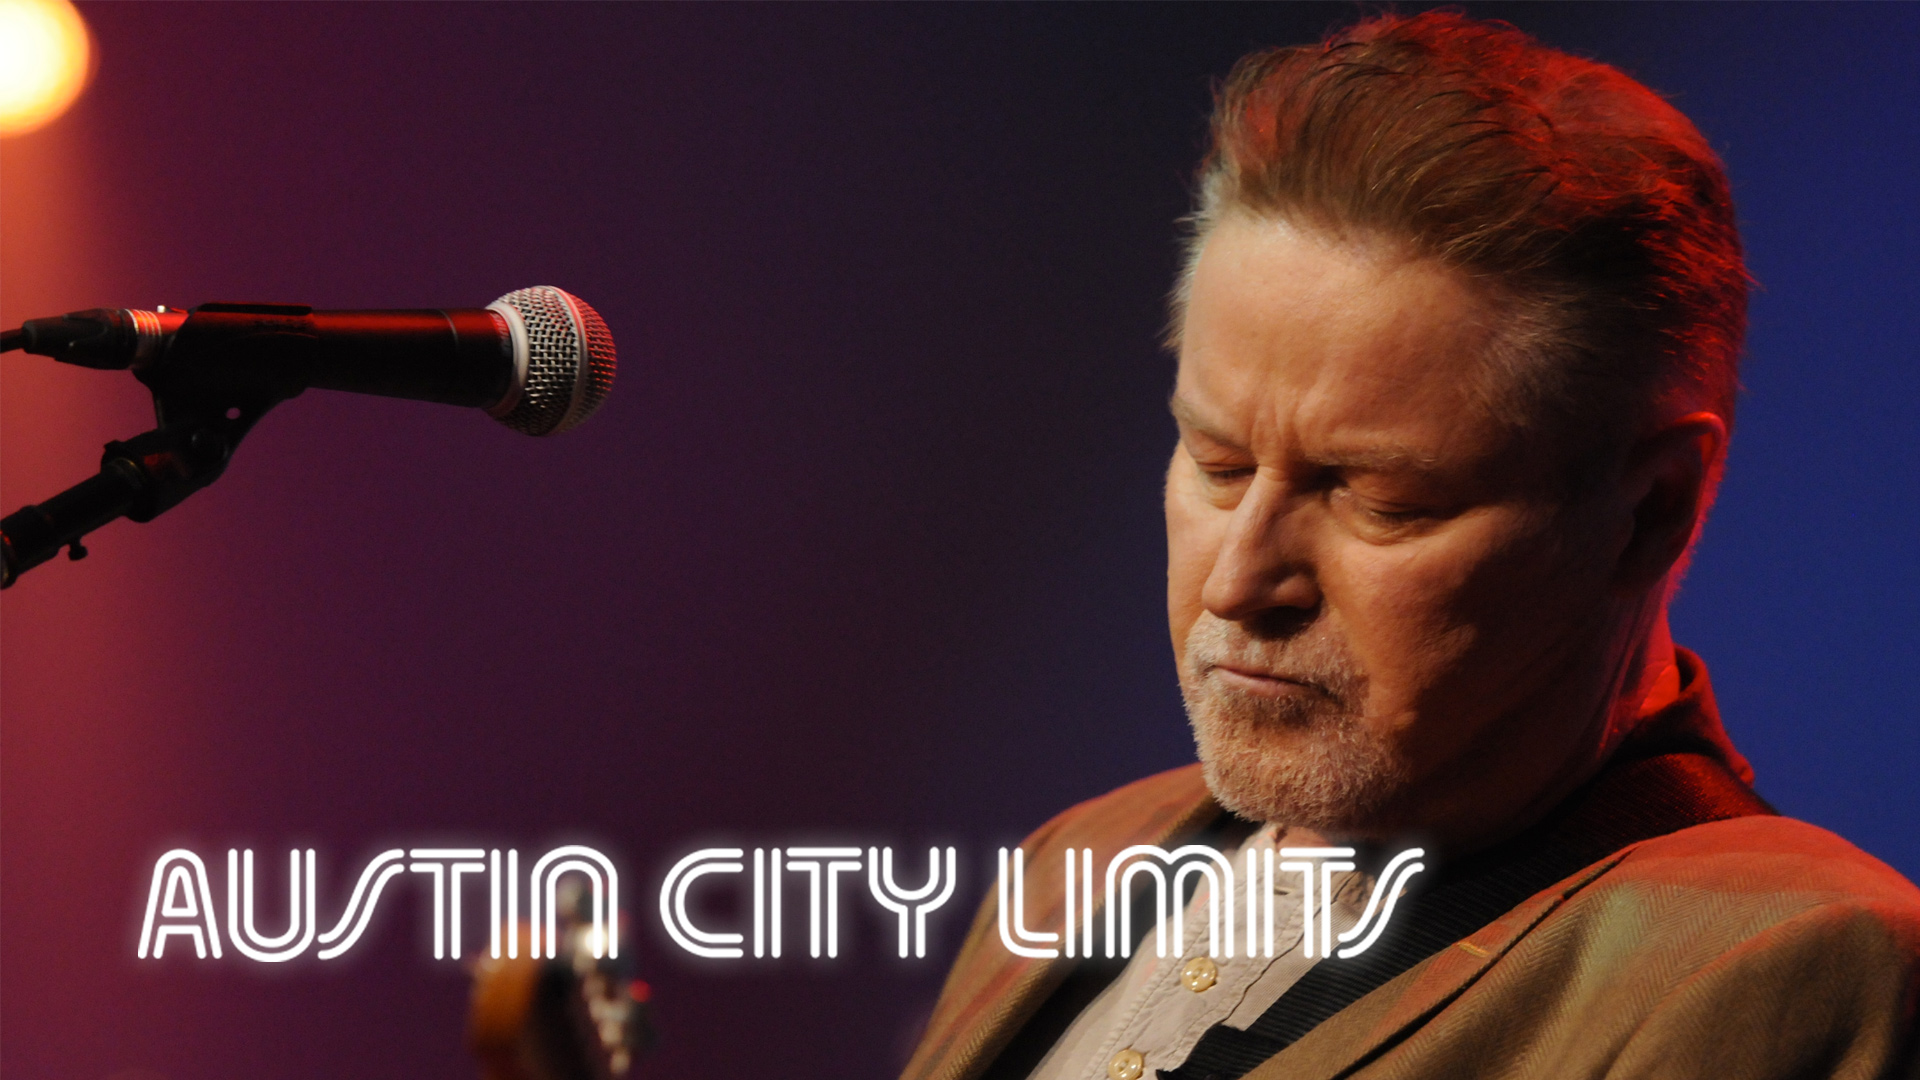 Austin City Limits: Don Henley